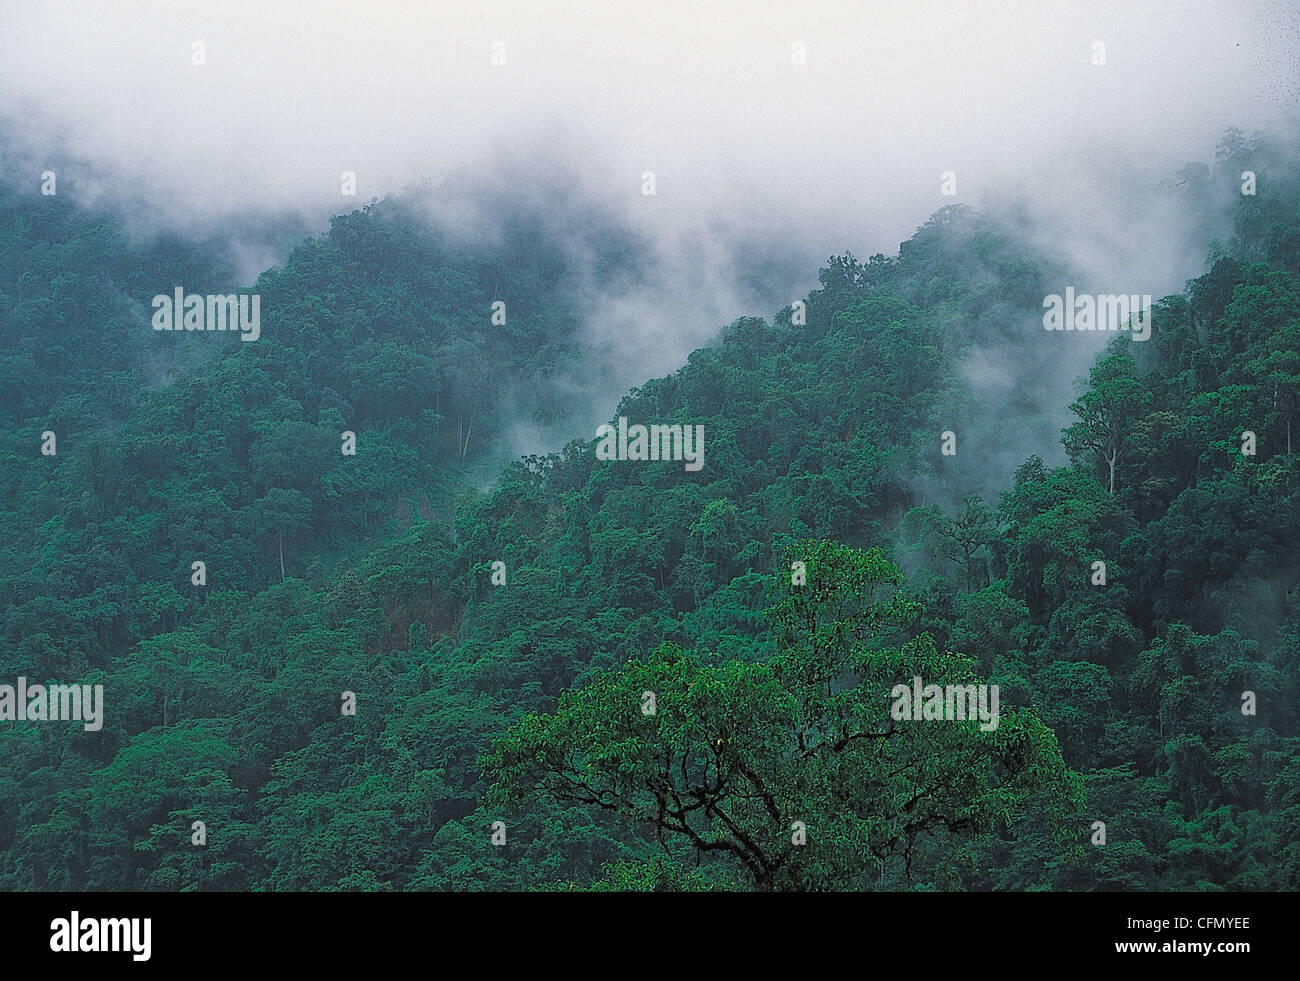 Mist over the rainforest Western Gats India - Stock Image